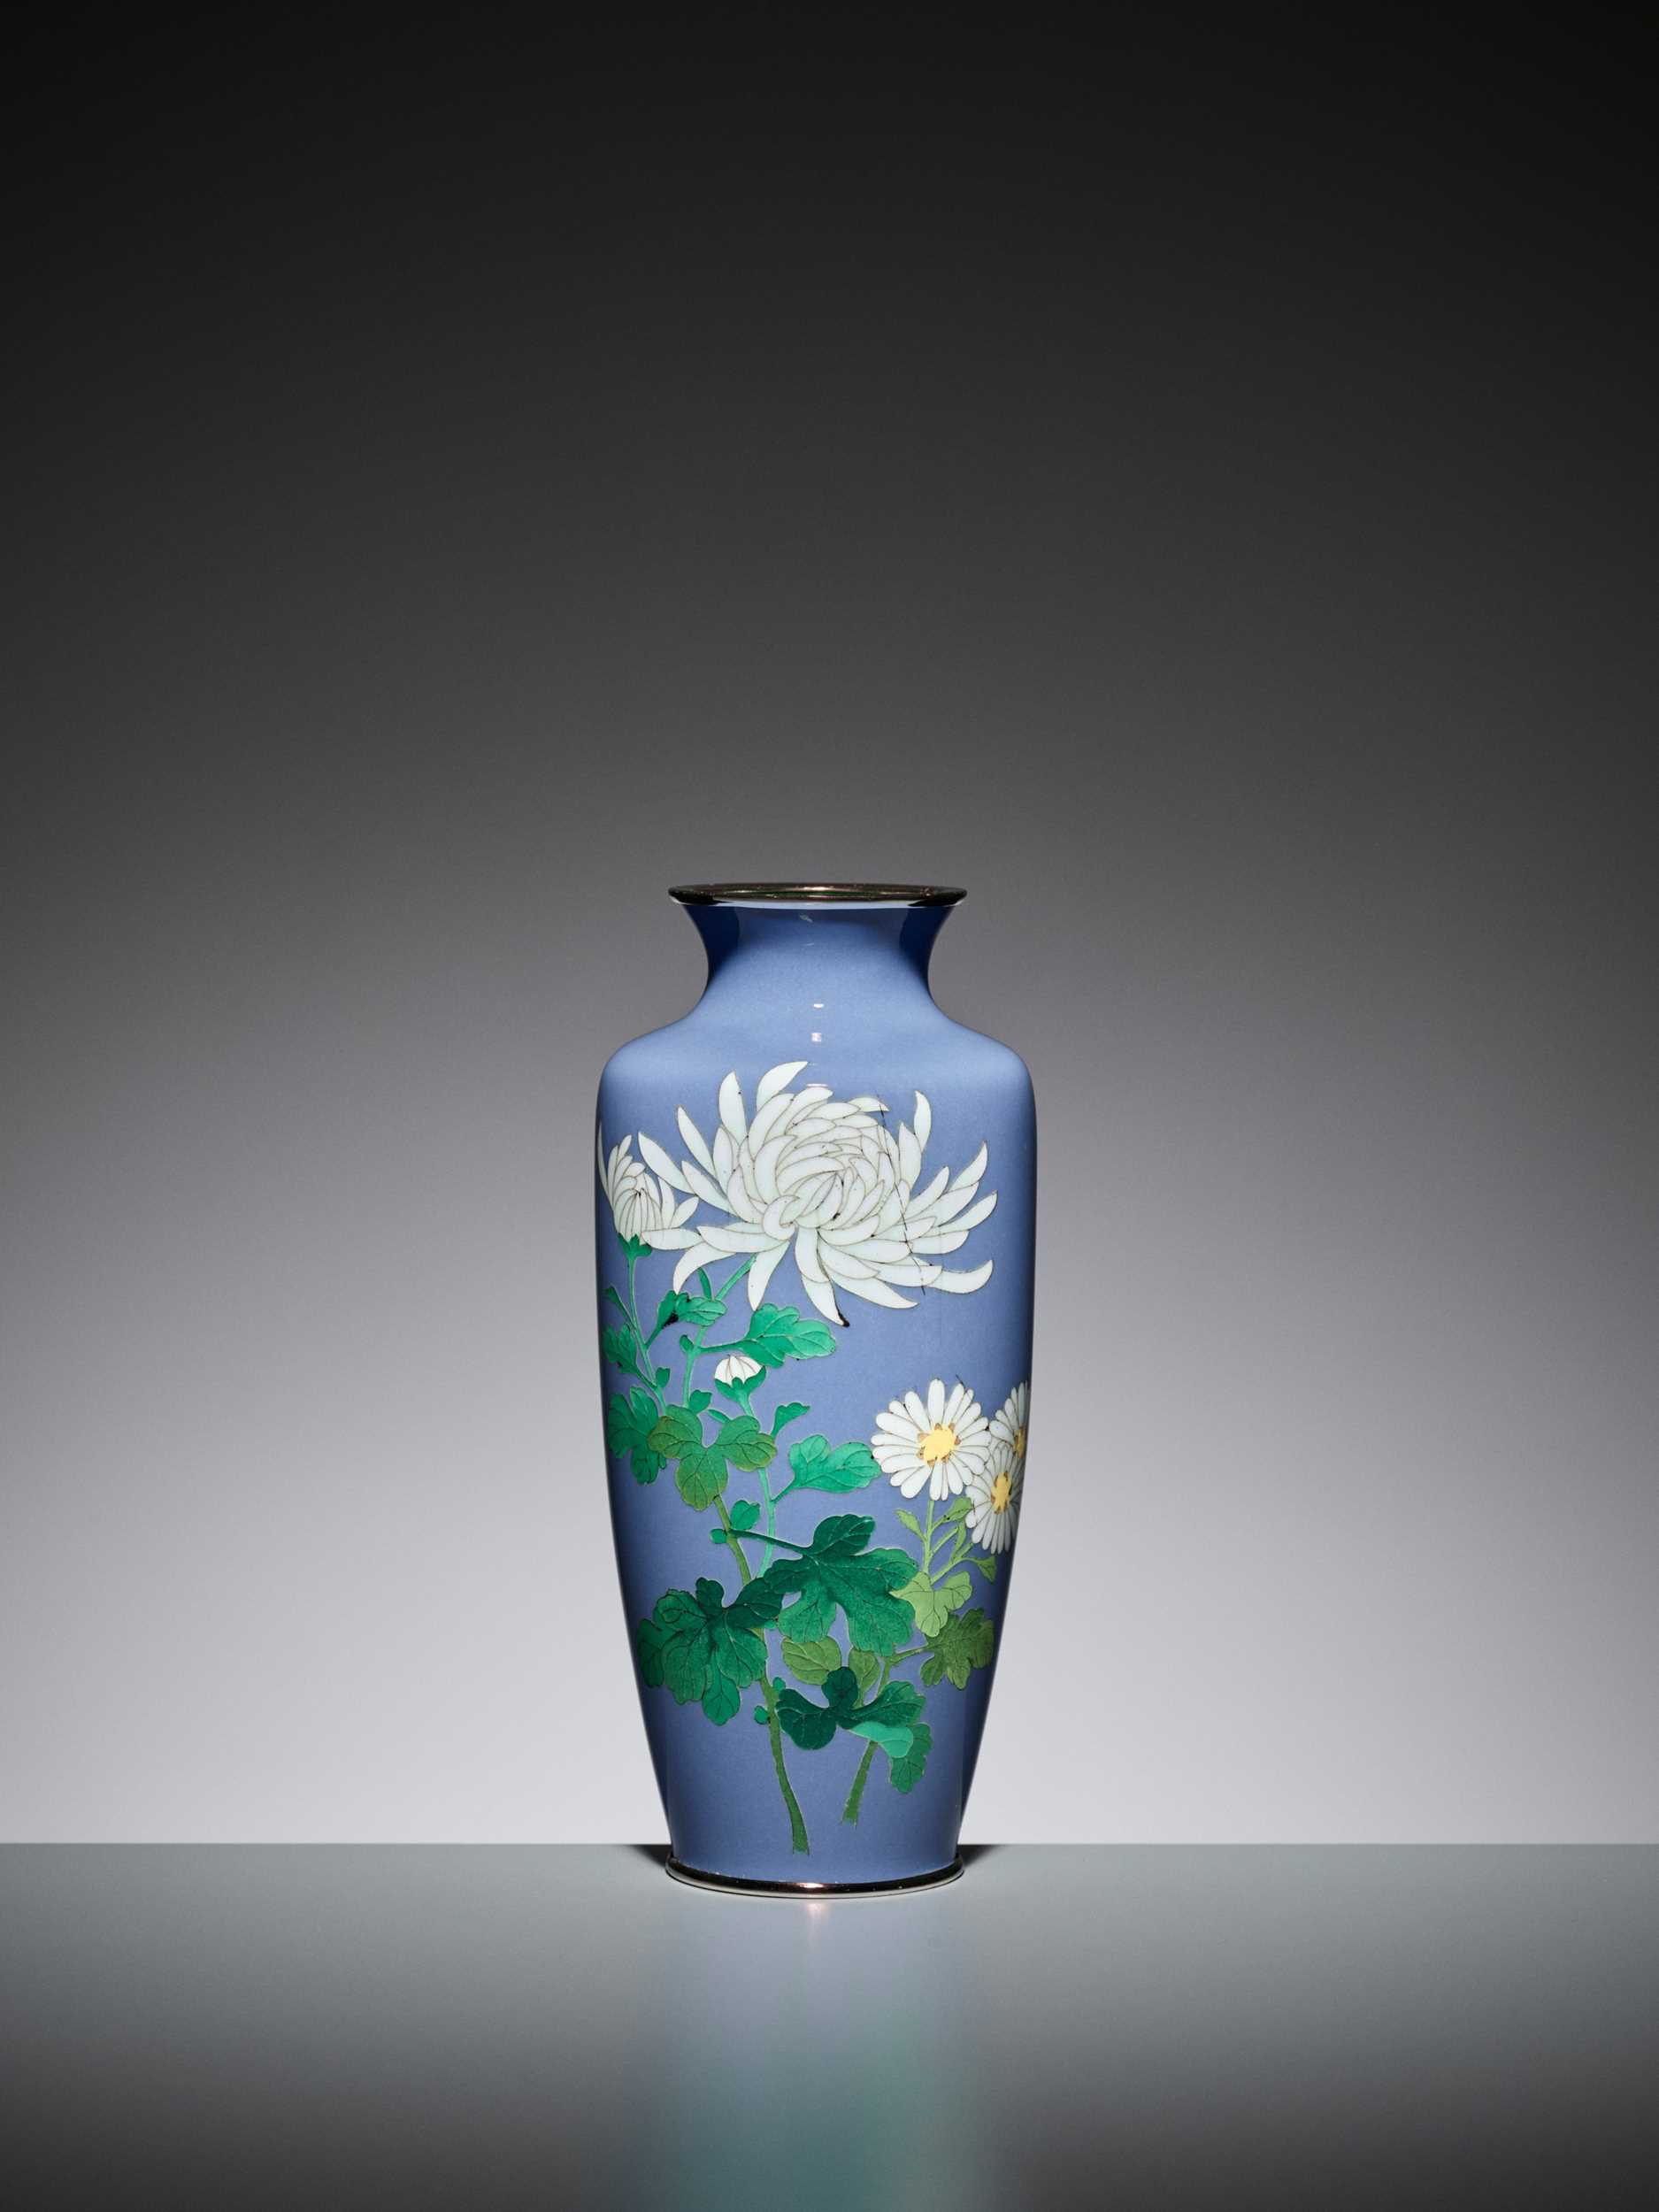 Lot 75 - ANDO: AN UNUSUAL PALE BLUE CLOISONNÉ ENAMEL VASE WITH PEONY AND CHRYSANTHEMUM